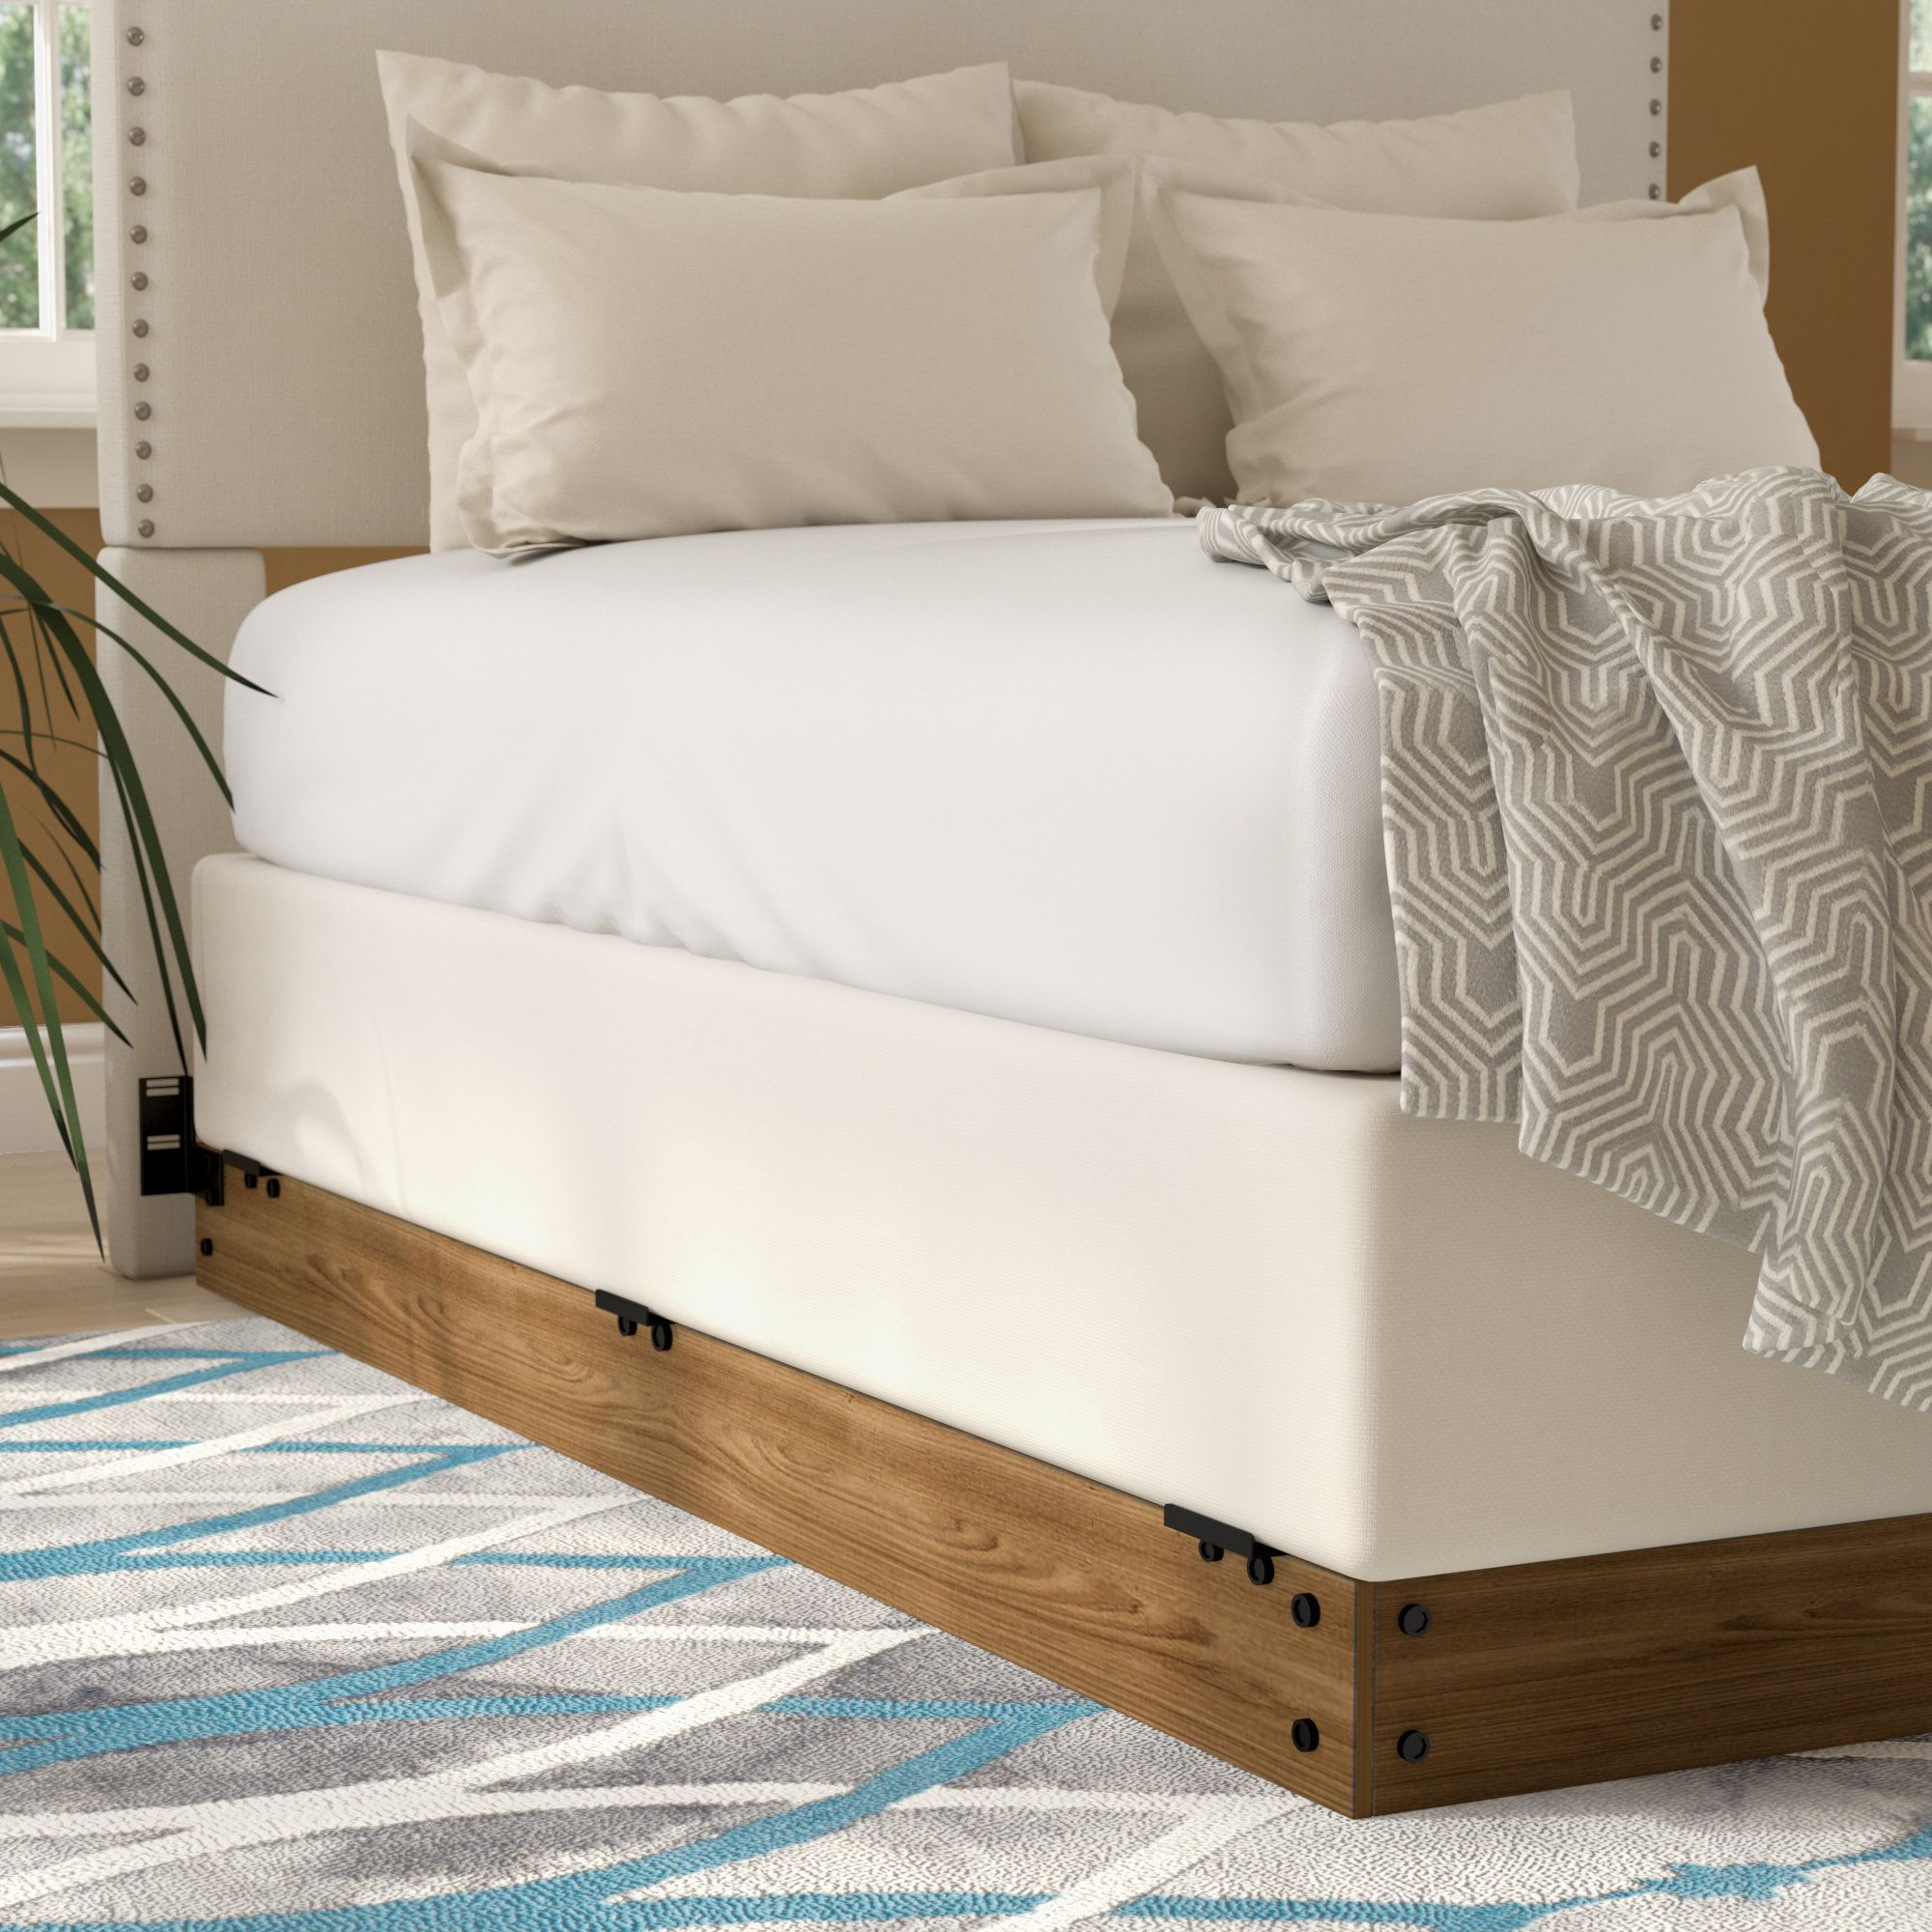 Wood Bed Frame Home Interior Design Ideas In 2020 Wood Bed Frame Bed Frame Box Bed Frame